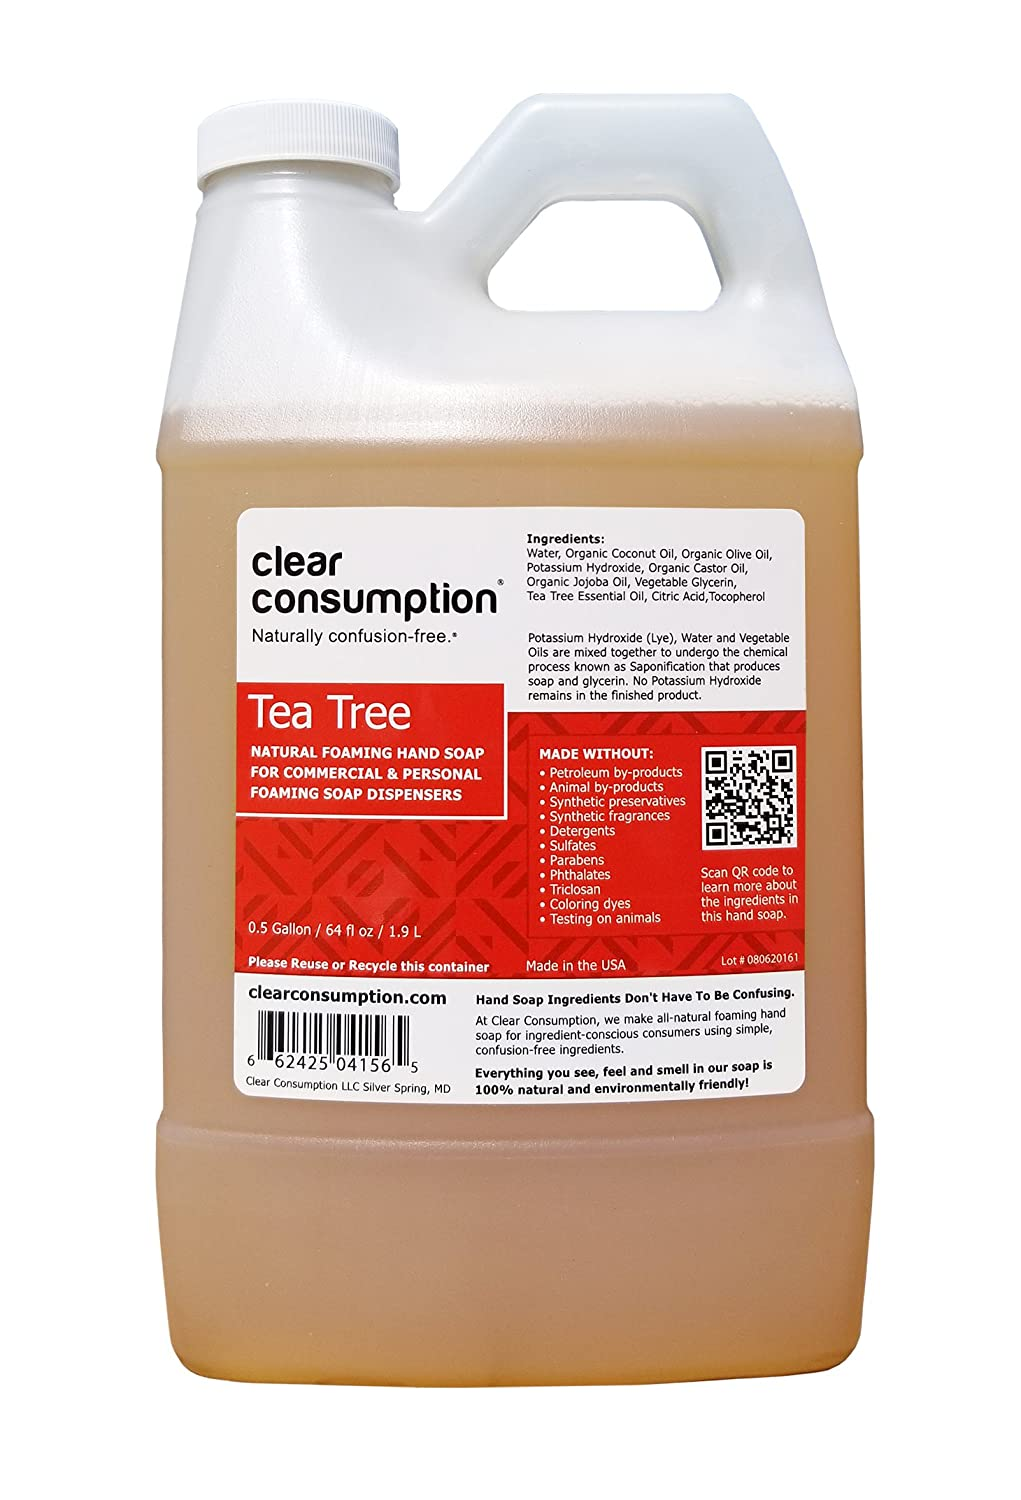 Clear Consumption Natural Tea Tree Foaming Hand Soap Refill 1/2 Gallon (64 oz) - Made from USDA Organic Vegetable Oils - For Commercial & Personal Foaming Soap Dispensers